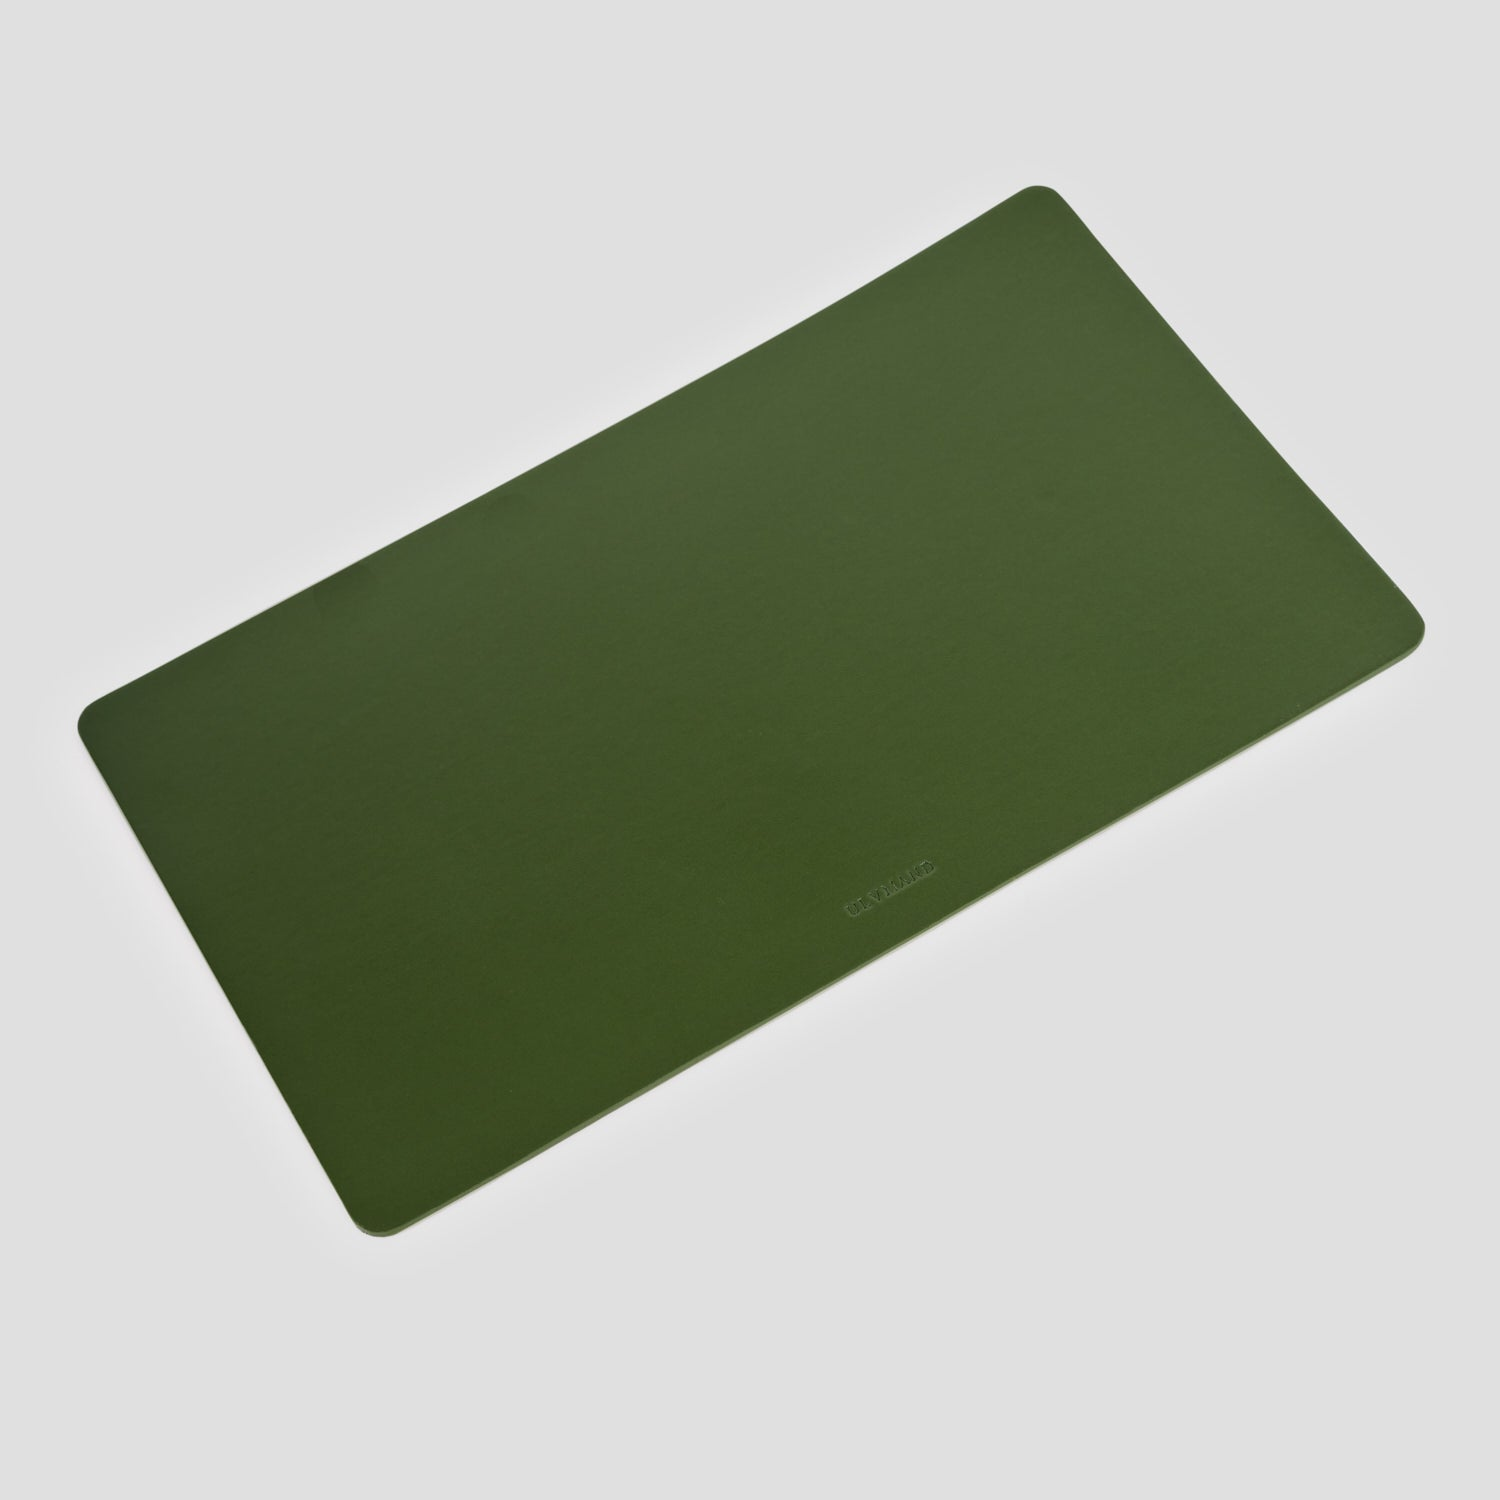 Ethan Desk Pad - Cactus Green